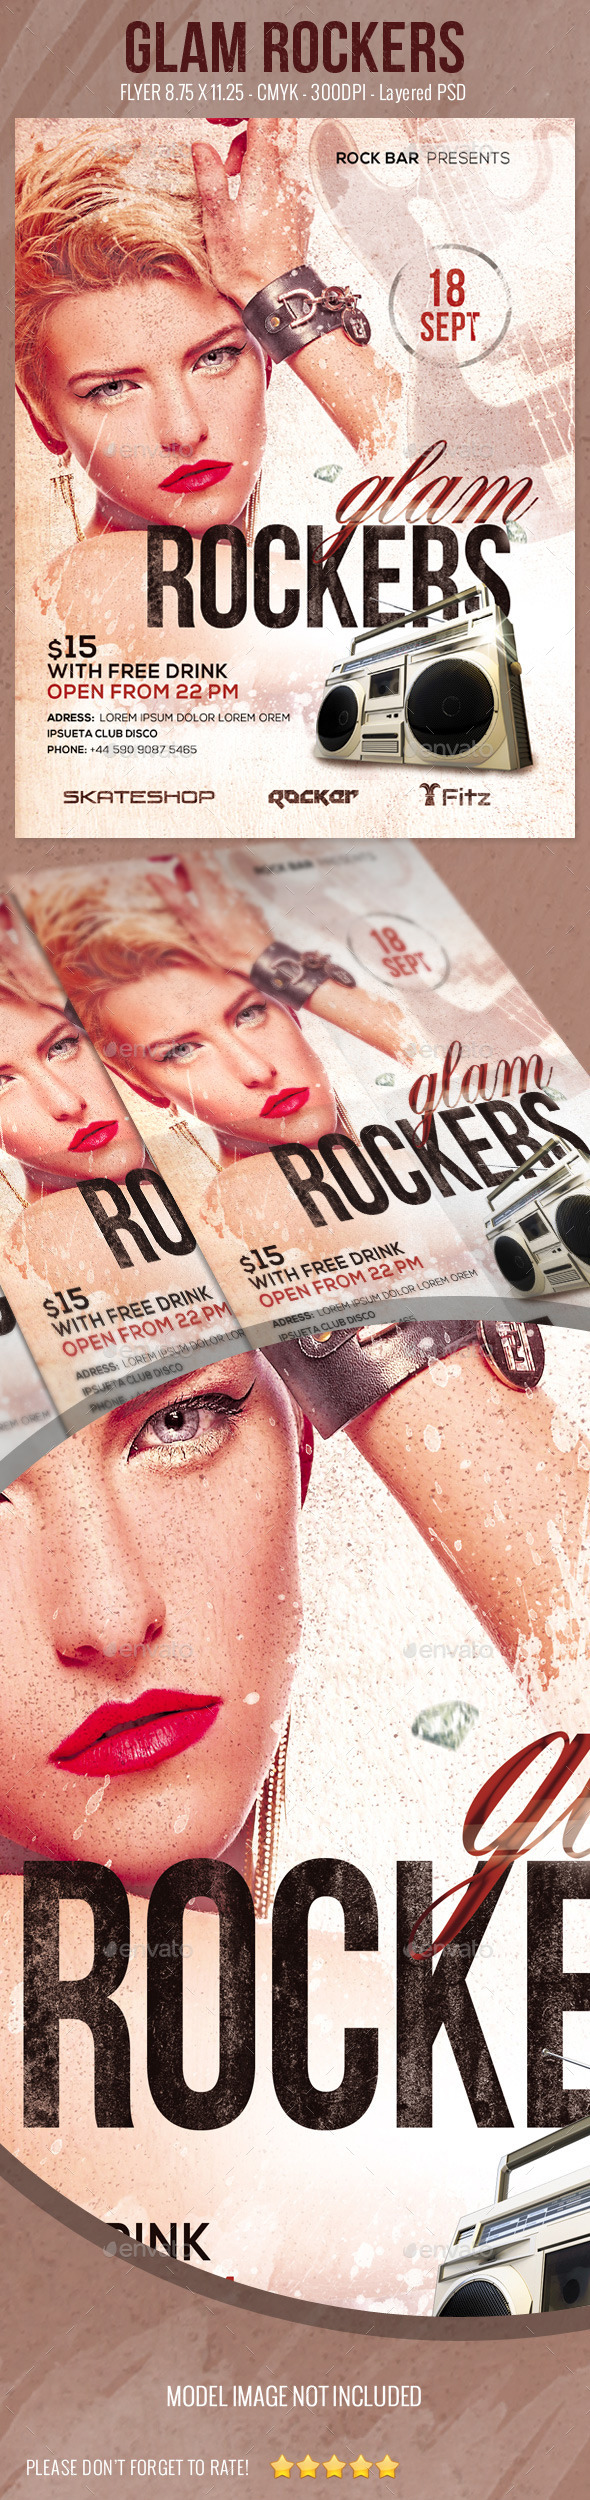 GraphicRiver Glam Rockers Flyer 9230759